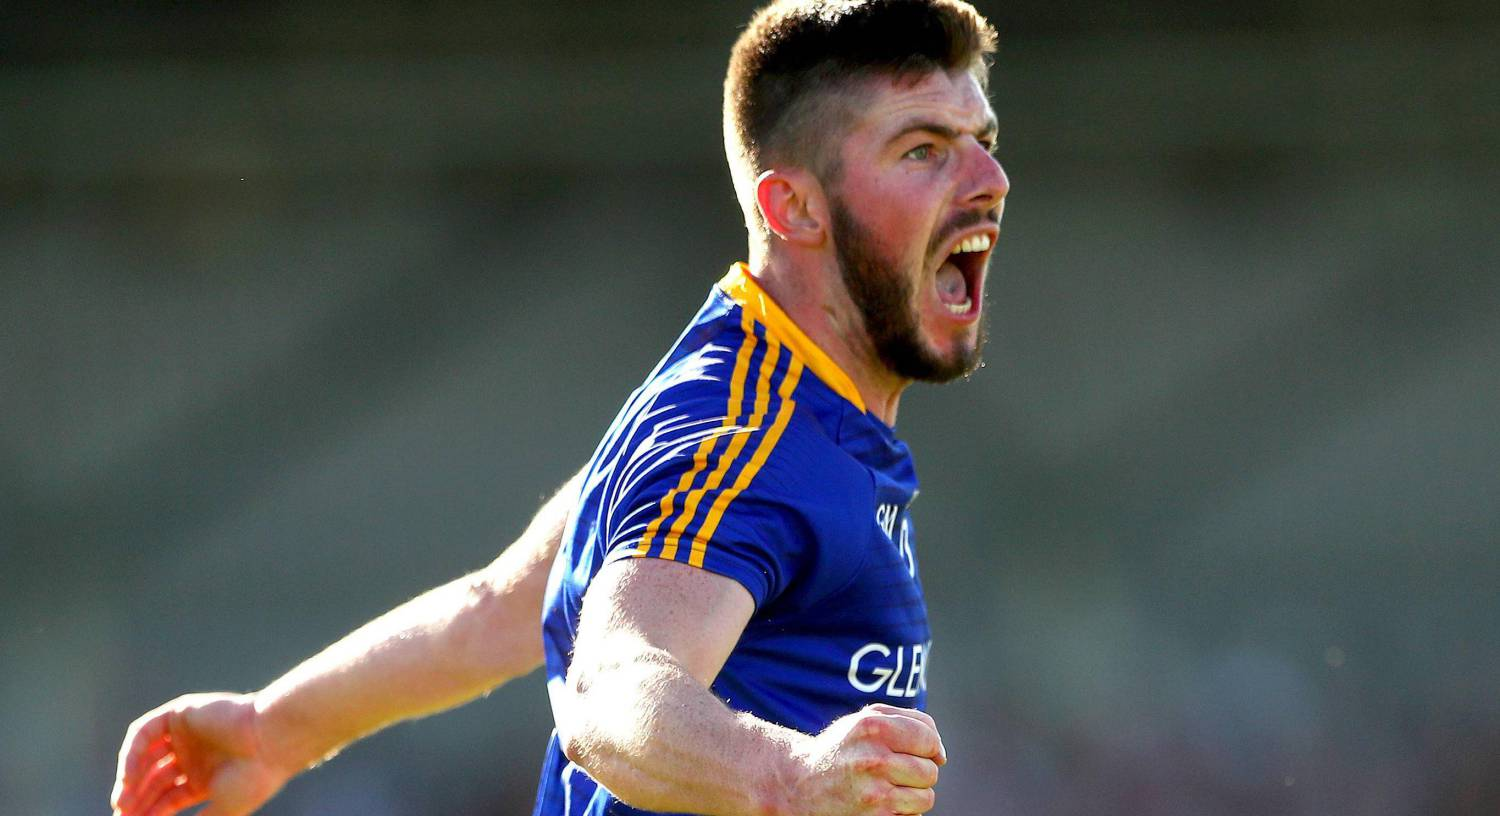 Robbie Smyth and Barry McKeon back for Longford